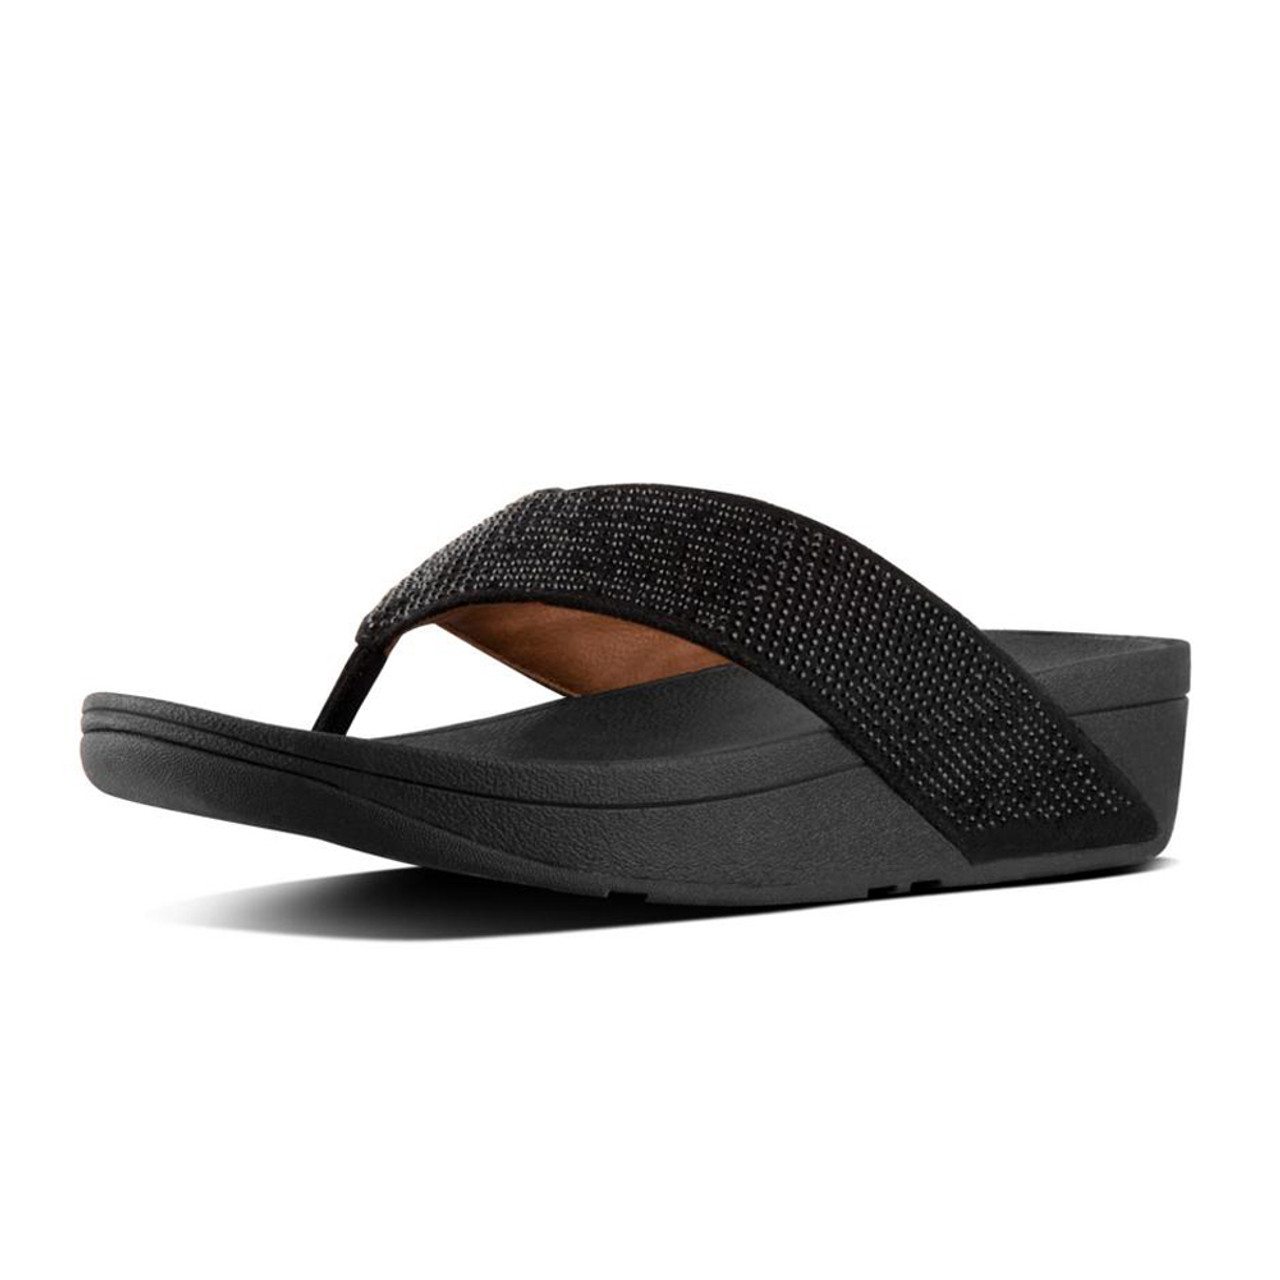 7160d78bfc1d Fitflop Women s Ritzy Thong Sandal Black - Shop now   Shoolu.com